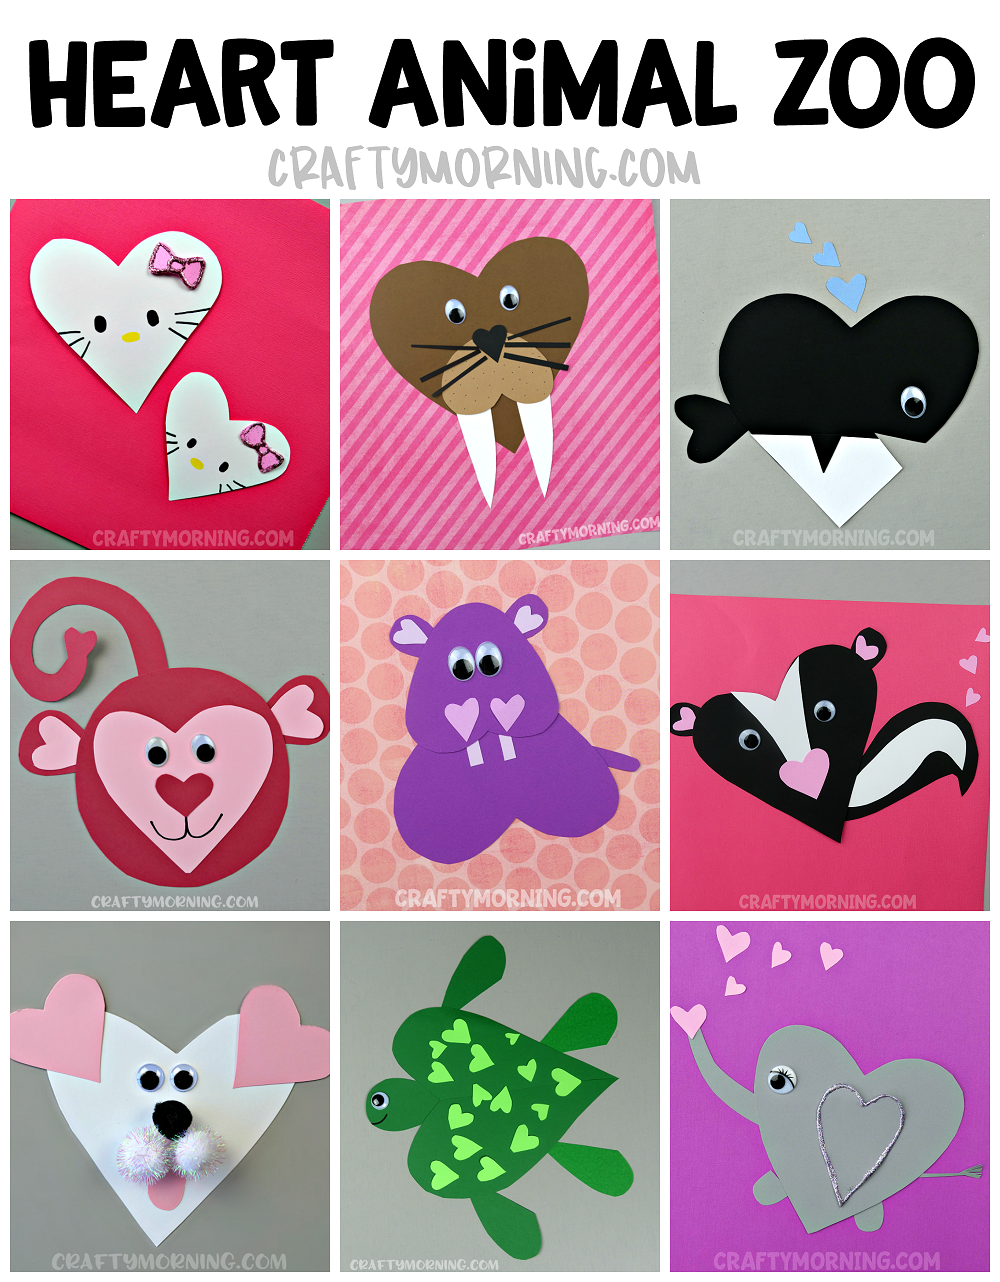 2. Heart Shaped Crafts - Simple Mom Project